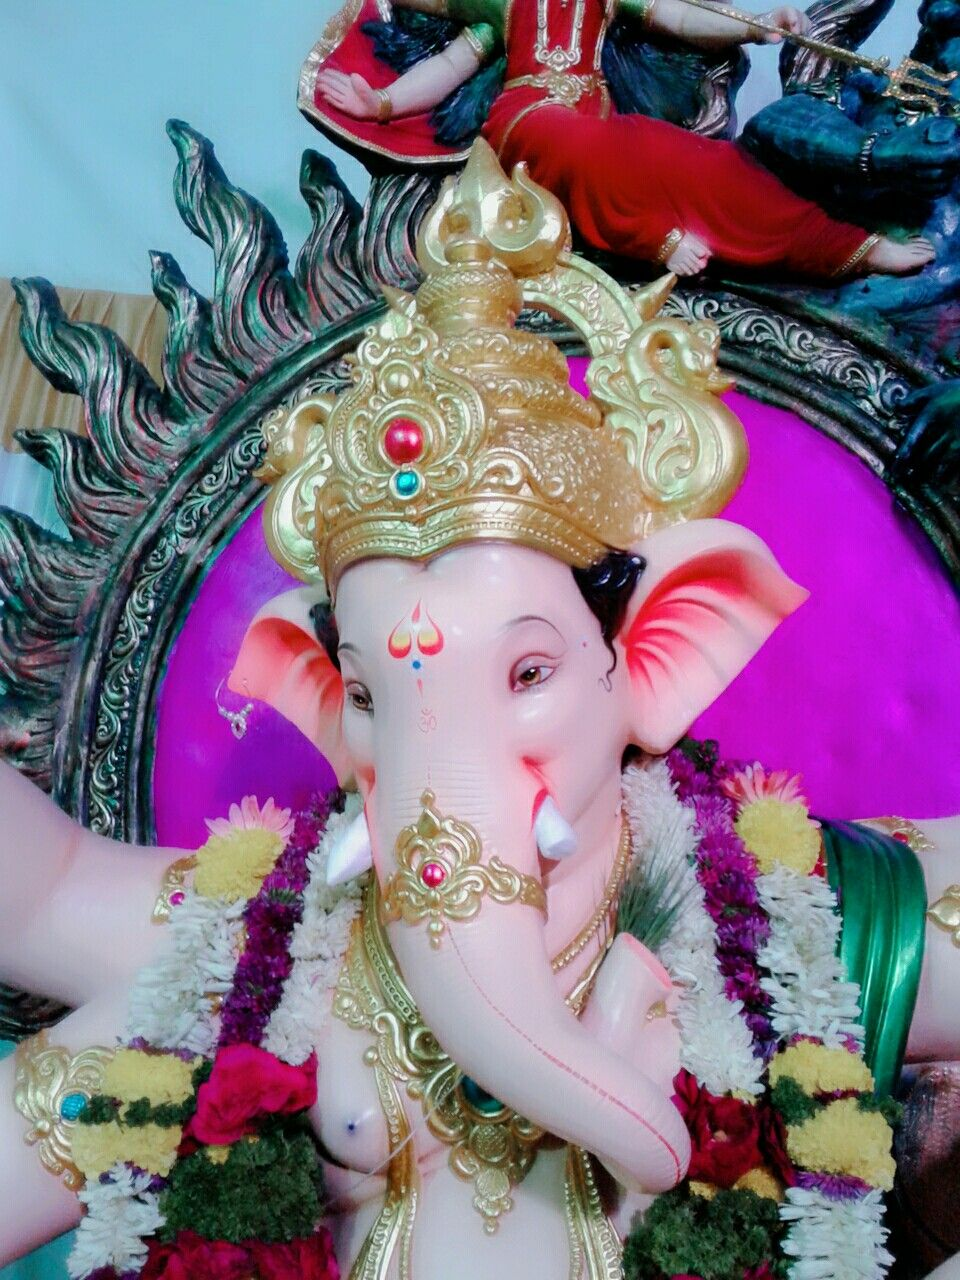 Ganpati bappa morya Download